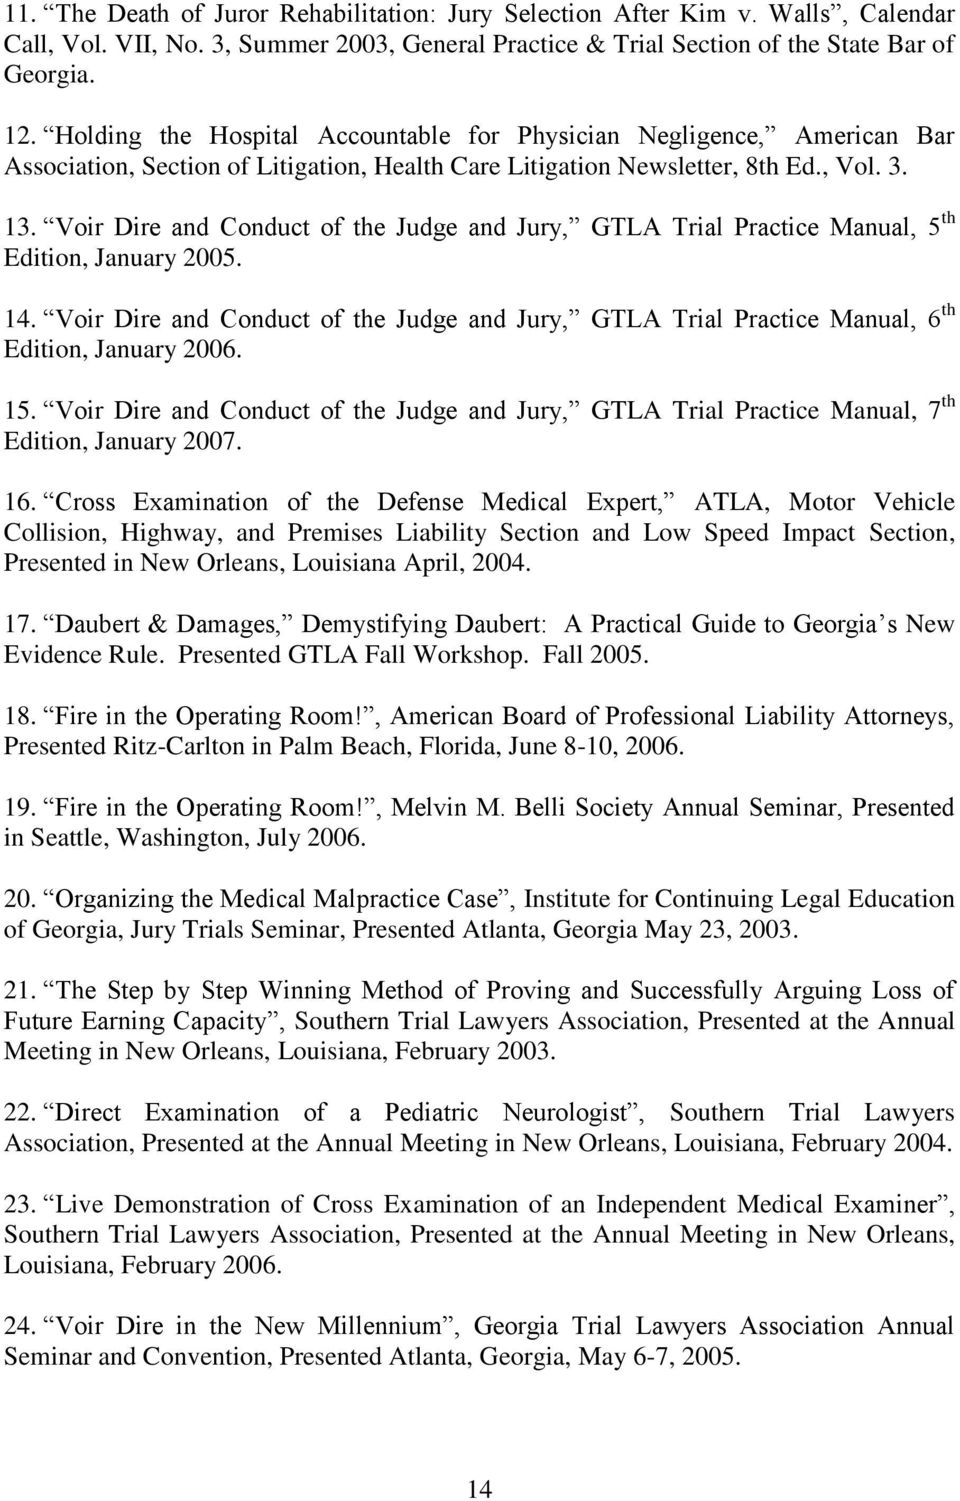 Voir Dire and Conduct of the Judge and Jury, GTLA Trial Practice Manual, 5 th Edition, January 2005. 14.